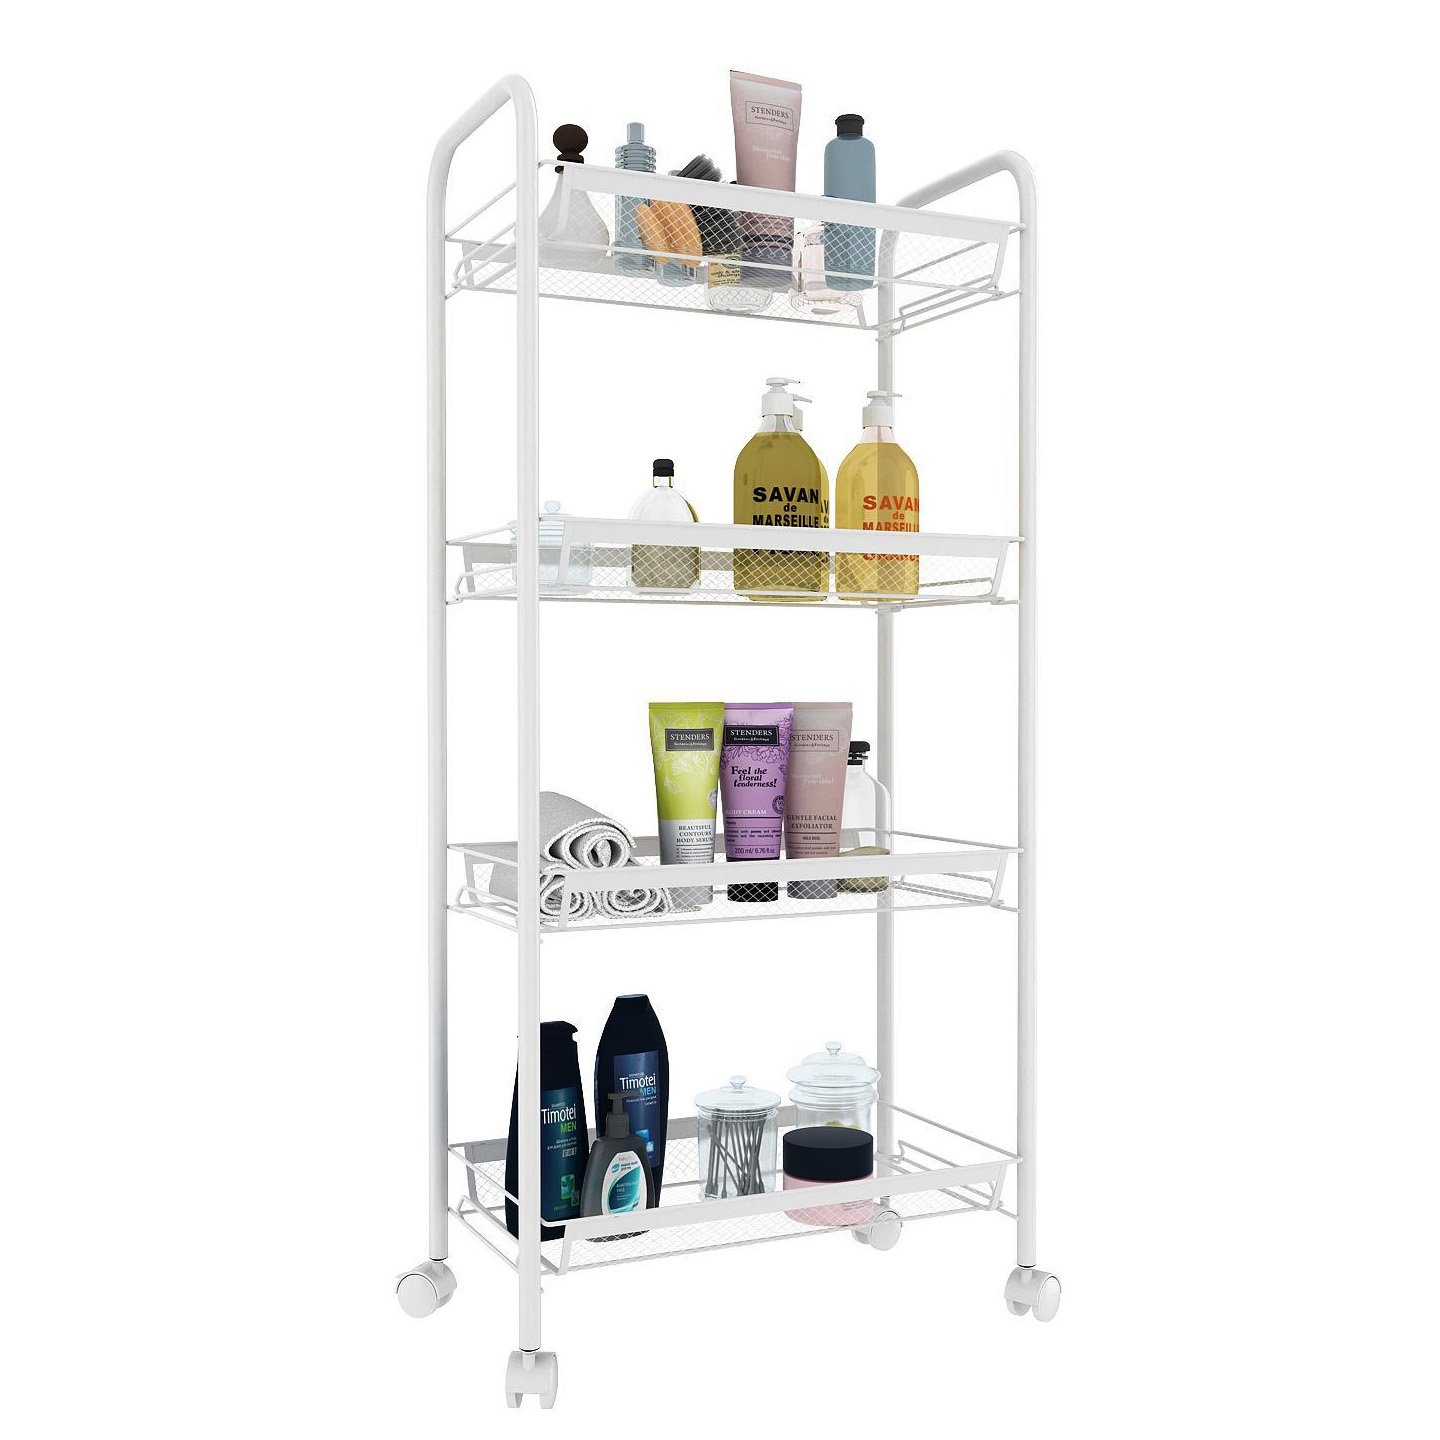 All Purpose Shelving, 3-Tier Mesh Mesh Serving Trolley Sturdy Rolling Cart with Metal Handle and 5 Hooks for Kitchen Home Office (UK STOCK) Cooshional